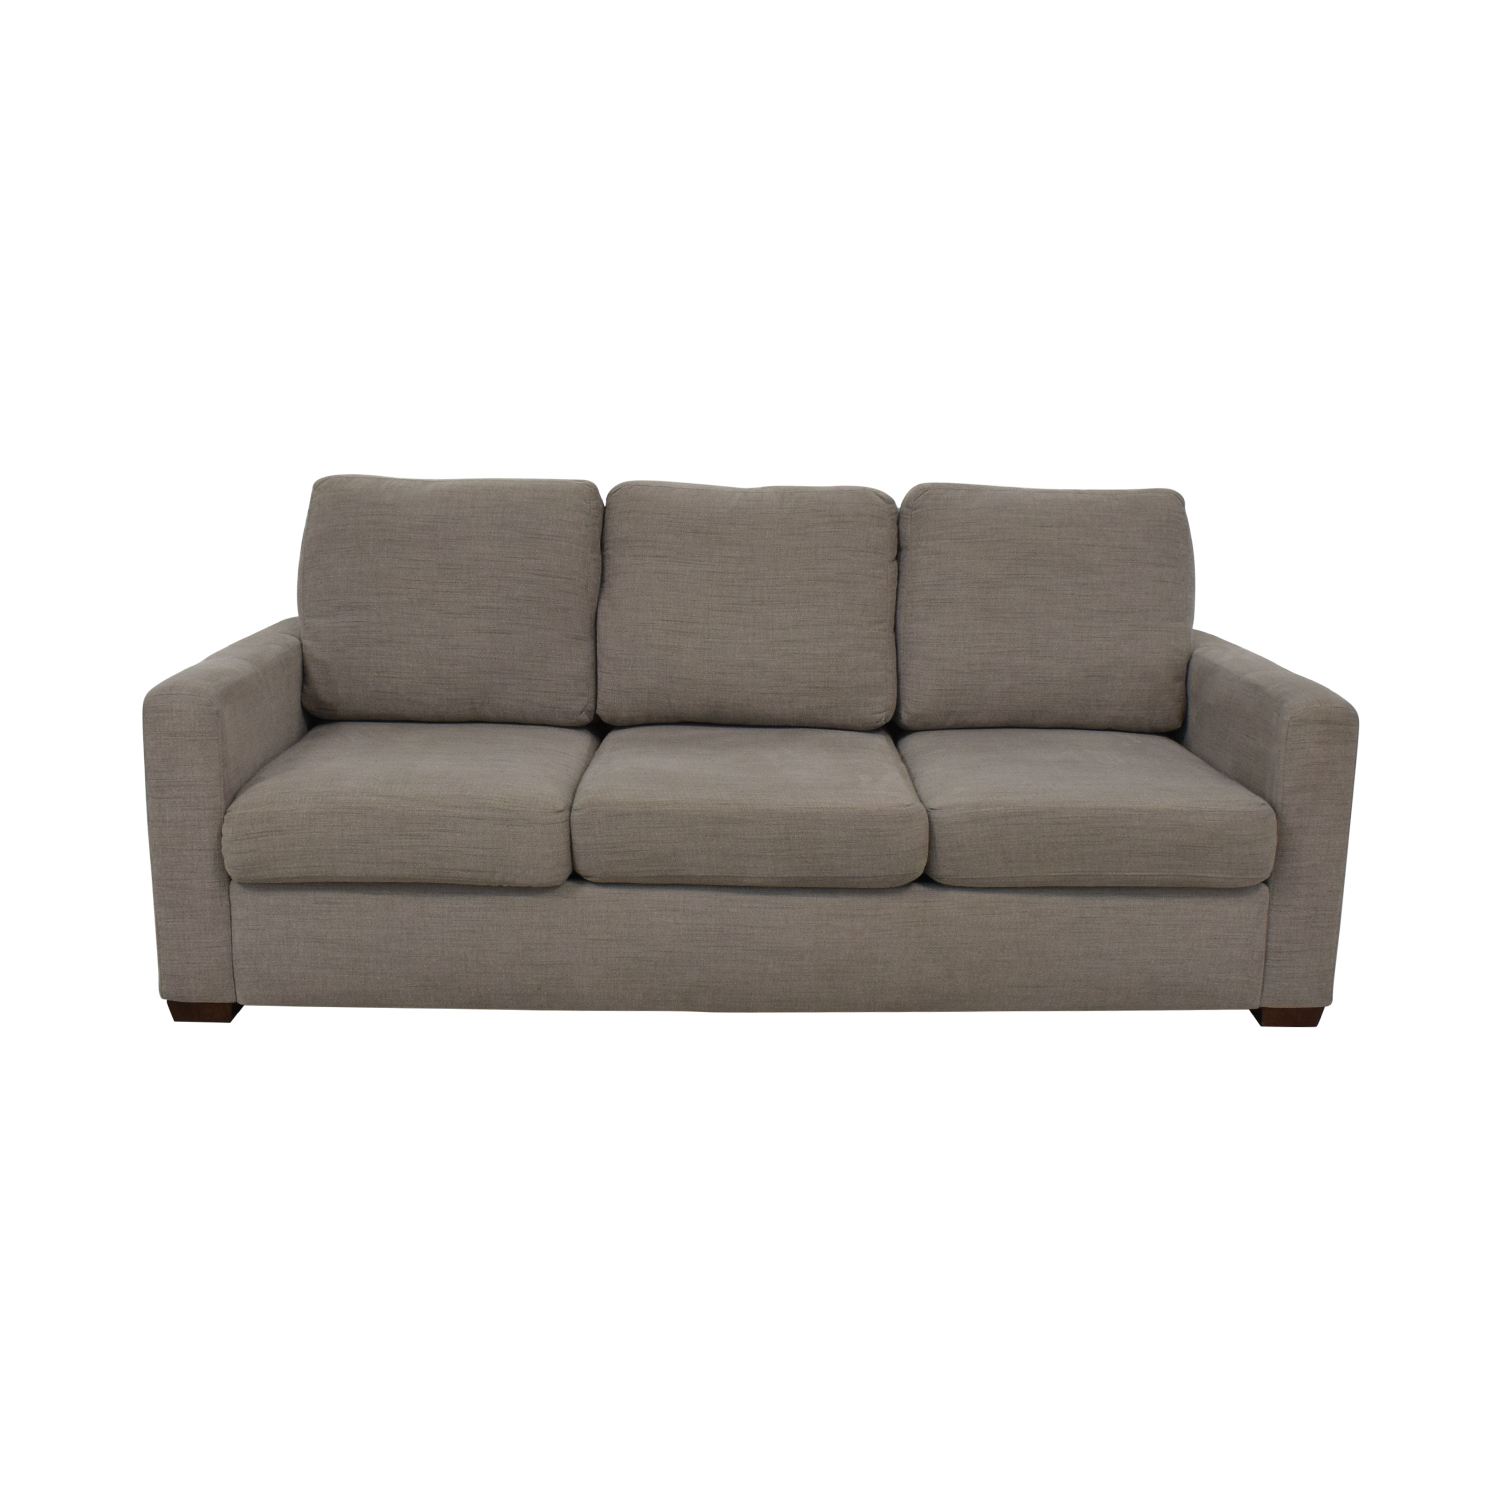 buy Room & Board Berin Wide Arm Sofa Room & Board Classic Sofas